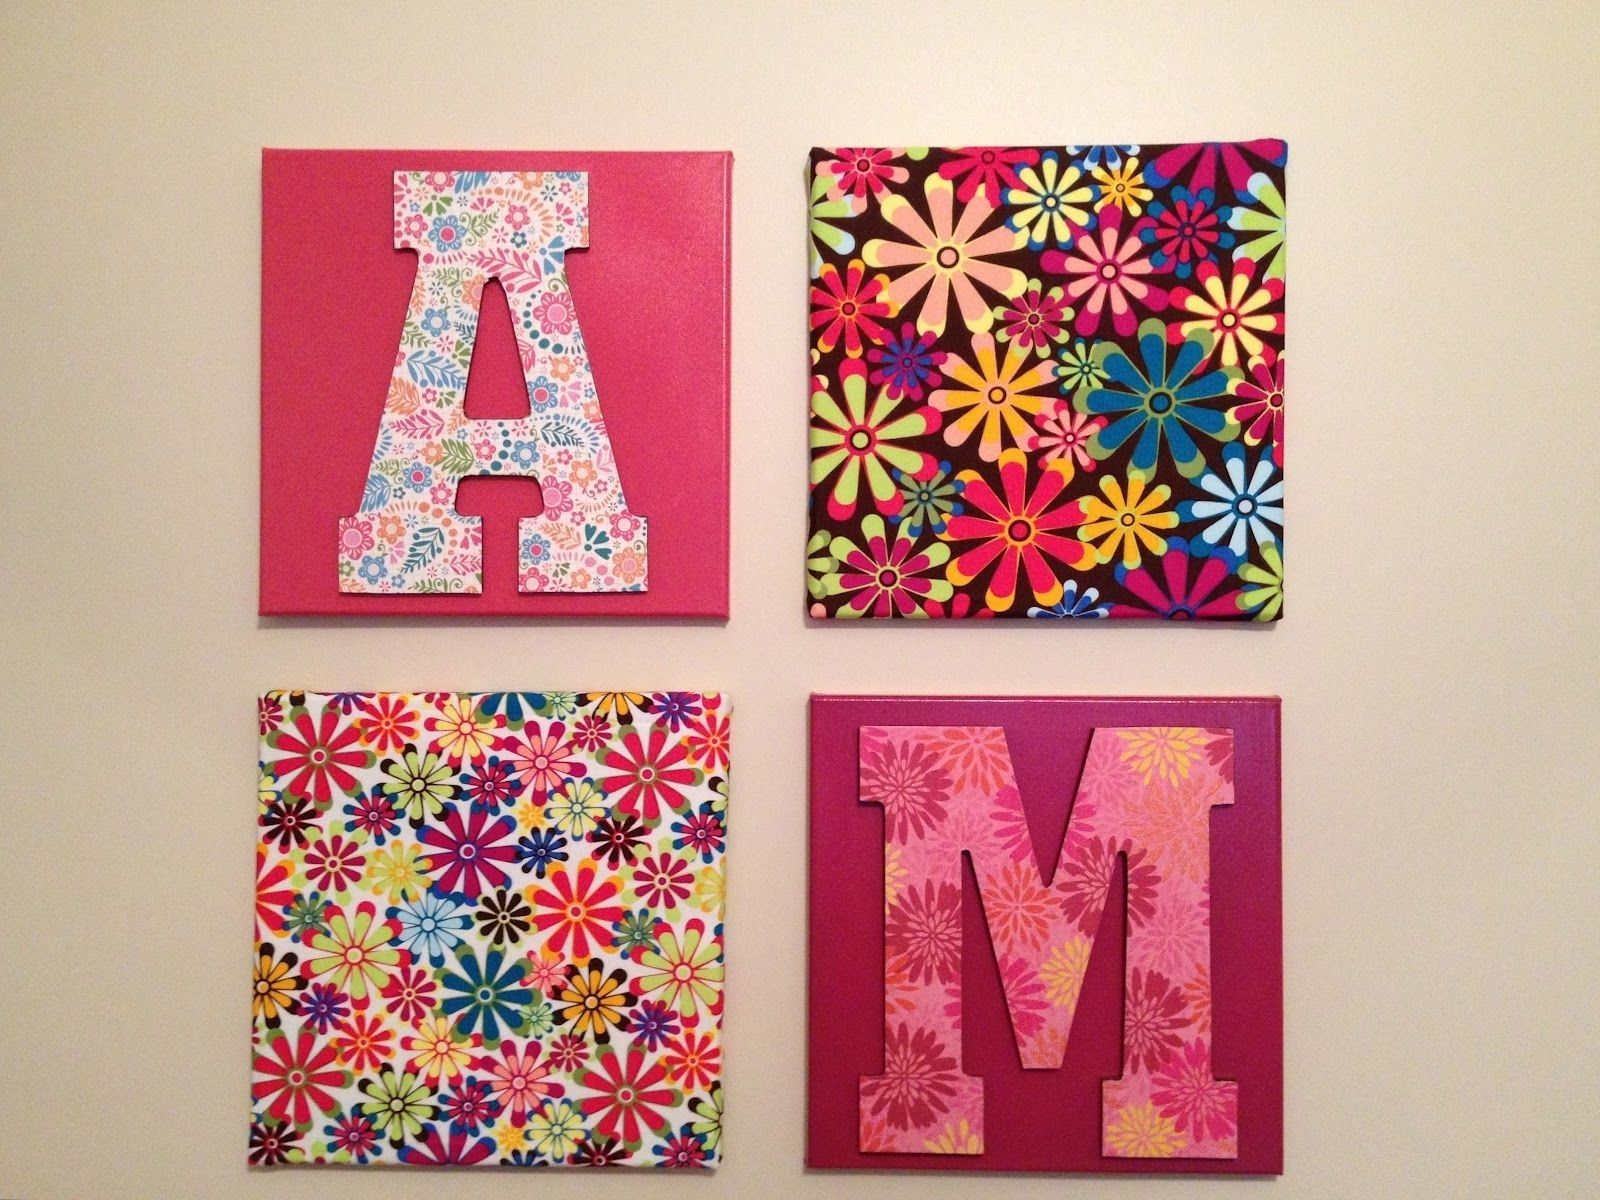 Craft Ideas For Girls | Living Unbound: Diy Easy Wall Hanging Regarding 2017 Red Fabric Wall Art (Gallery 7 of 15)